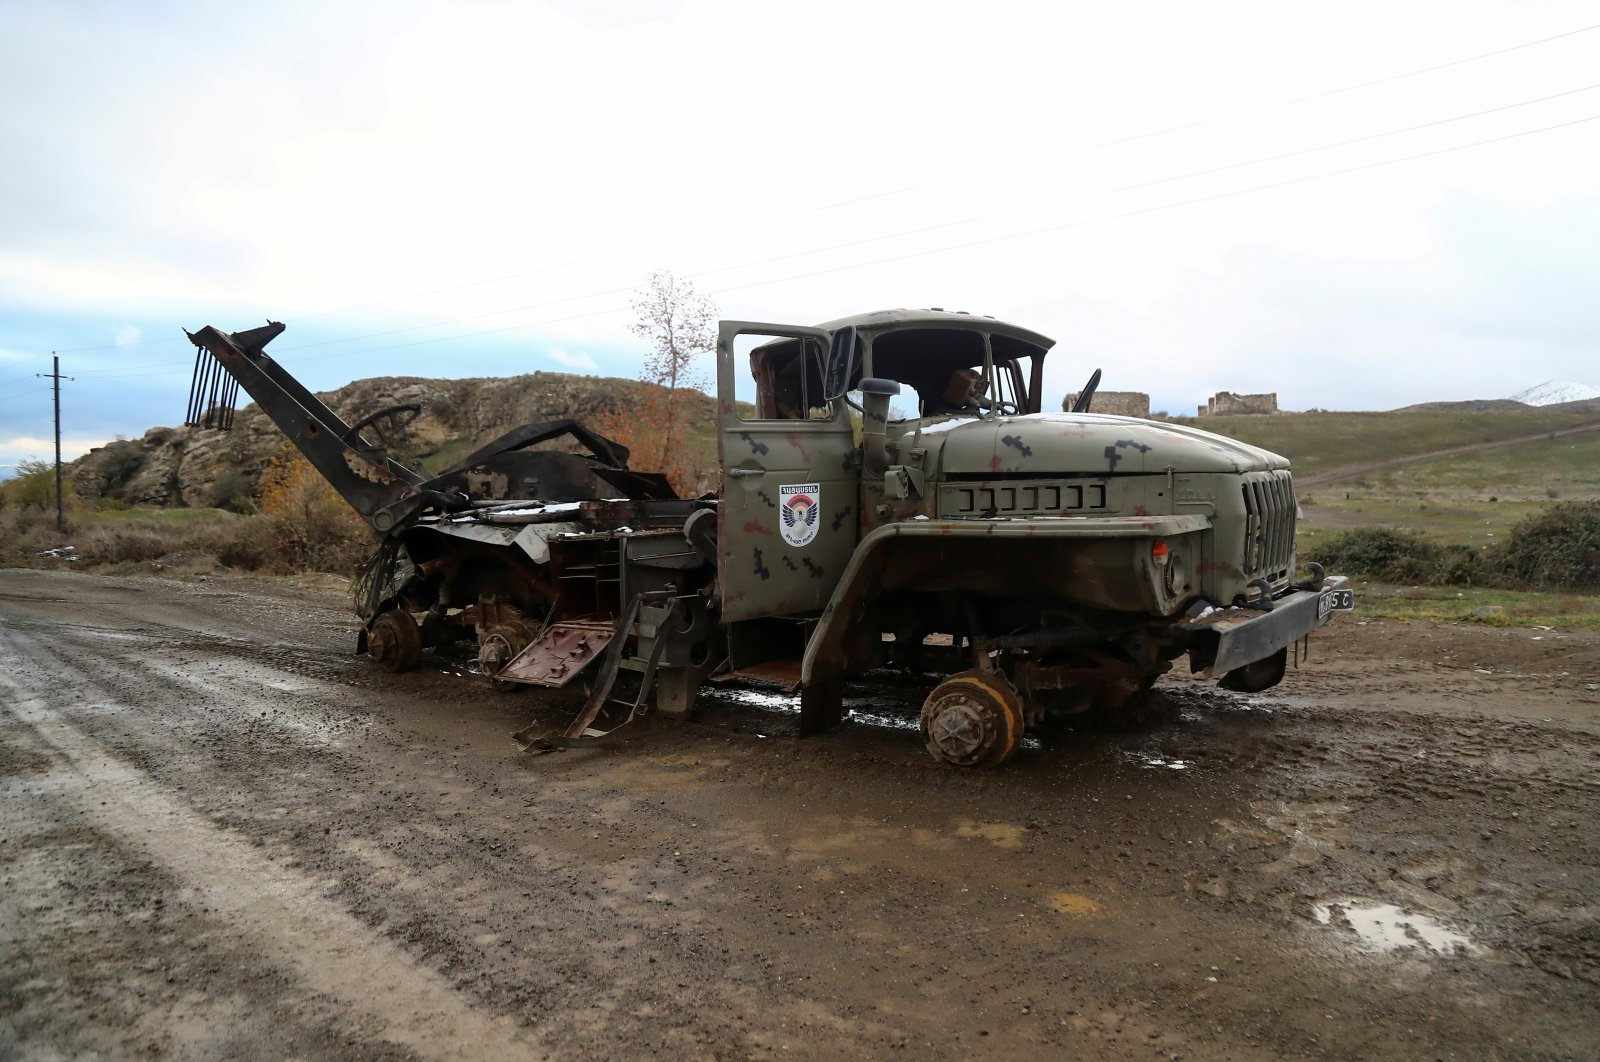 A view shows a damaged truck belonging to Armenian forces in an area that came under the control of Azerbaijan's troops following a military conflict over Nagorno-Karabakh, in Jabrayil District, December 7, 2020. (Reuters Photo)